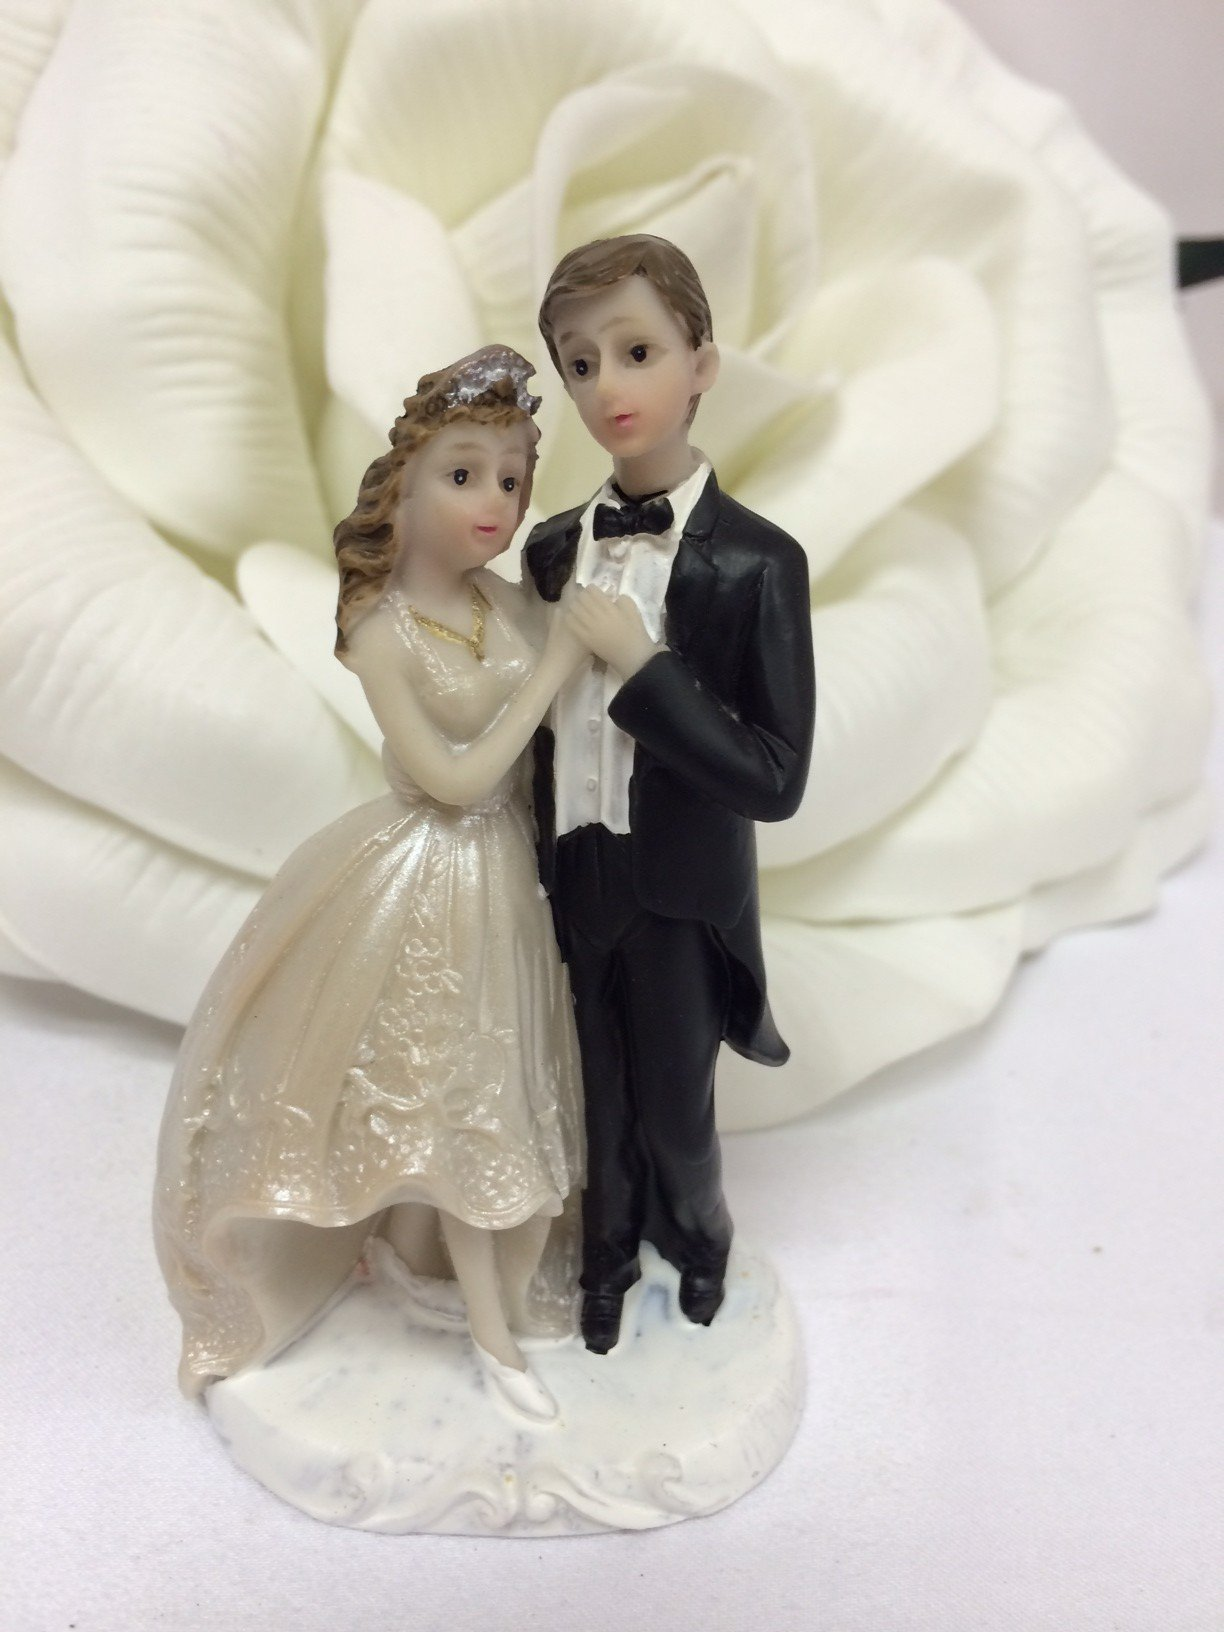 48 Wedding Bride and Groom Couple Favor Cake Topper Figurine